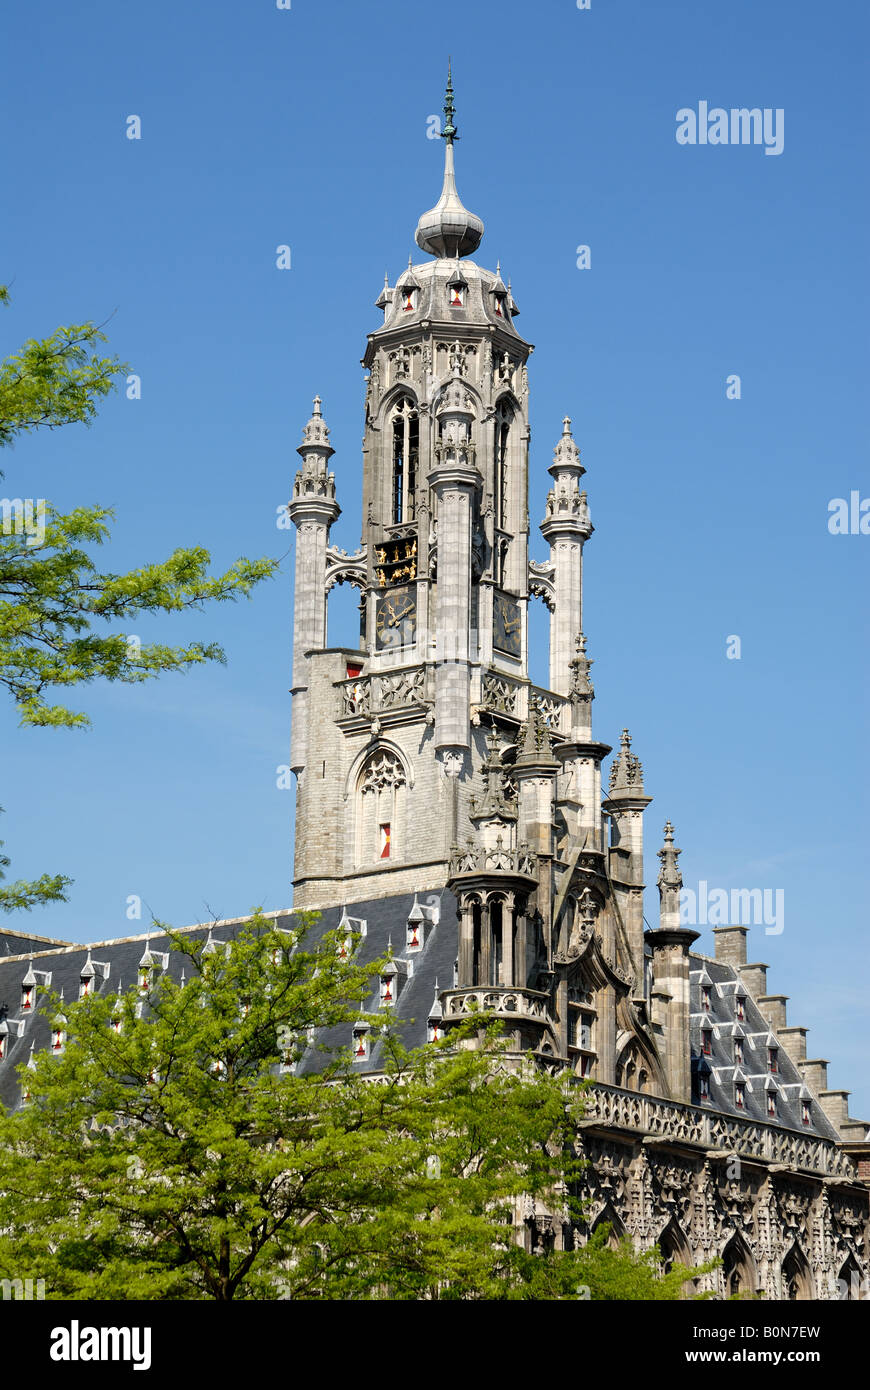 Part of the city hall in Middelburg, the Netherlands Stock Photo